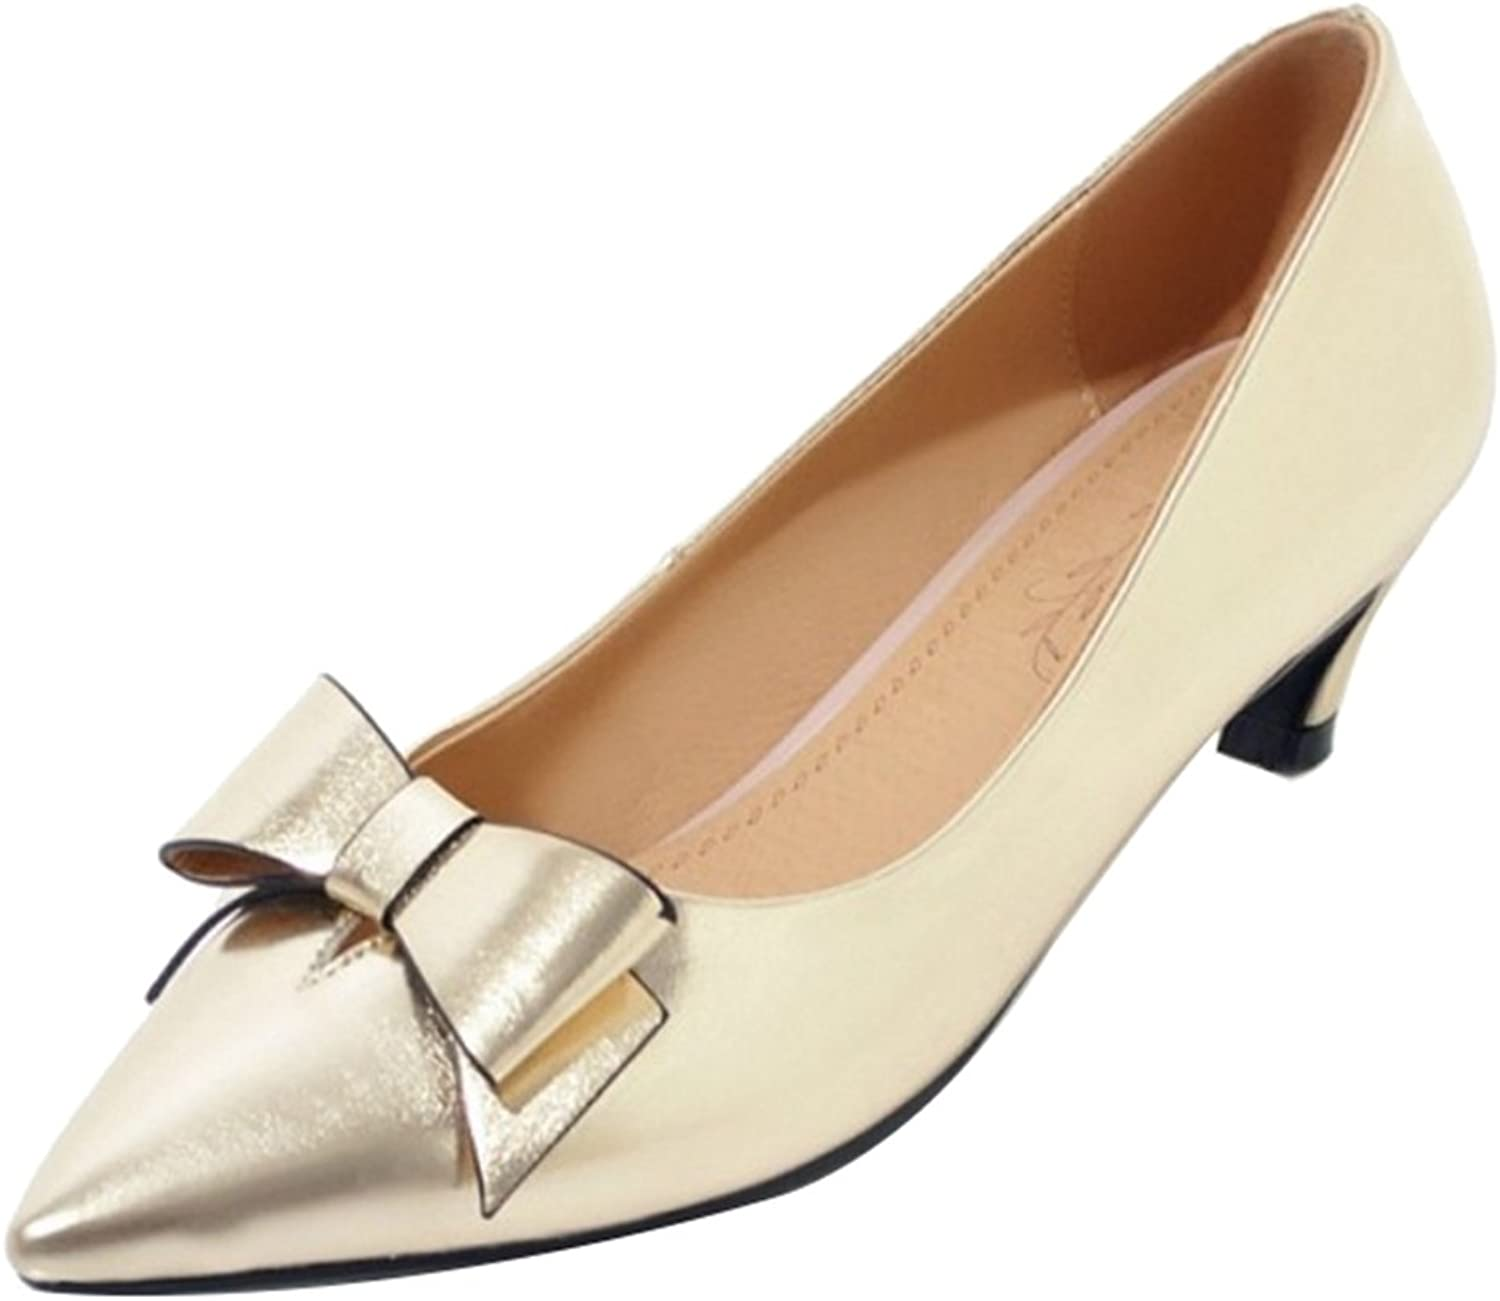 CuteFlats Women Pumps with Kitten Heel and Pointed Toe Casual shoes